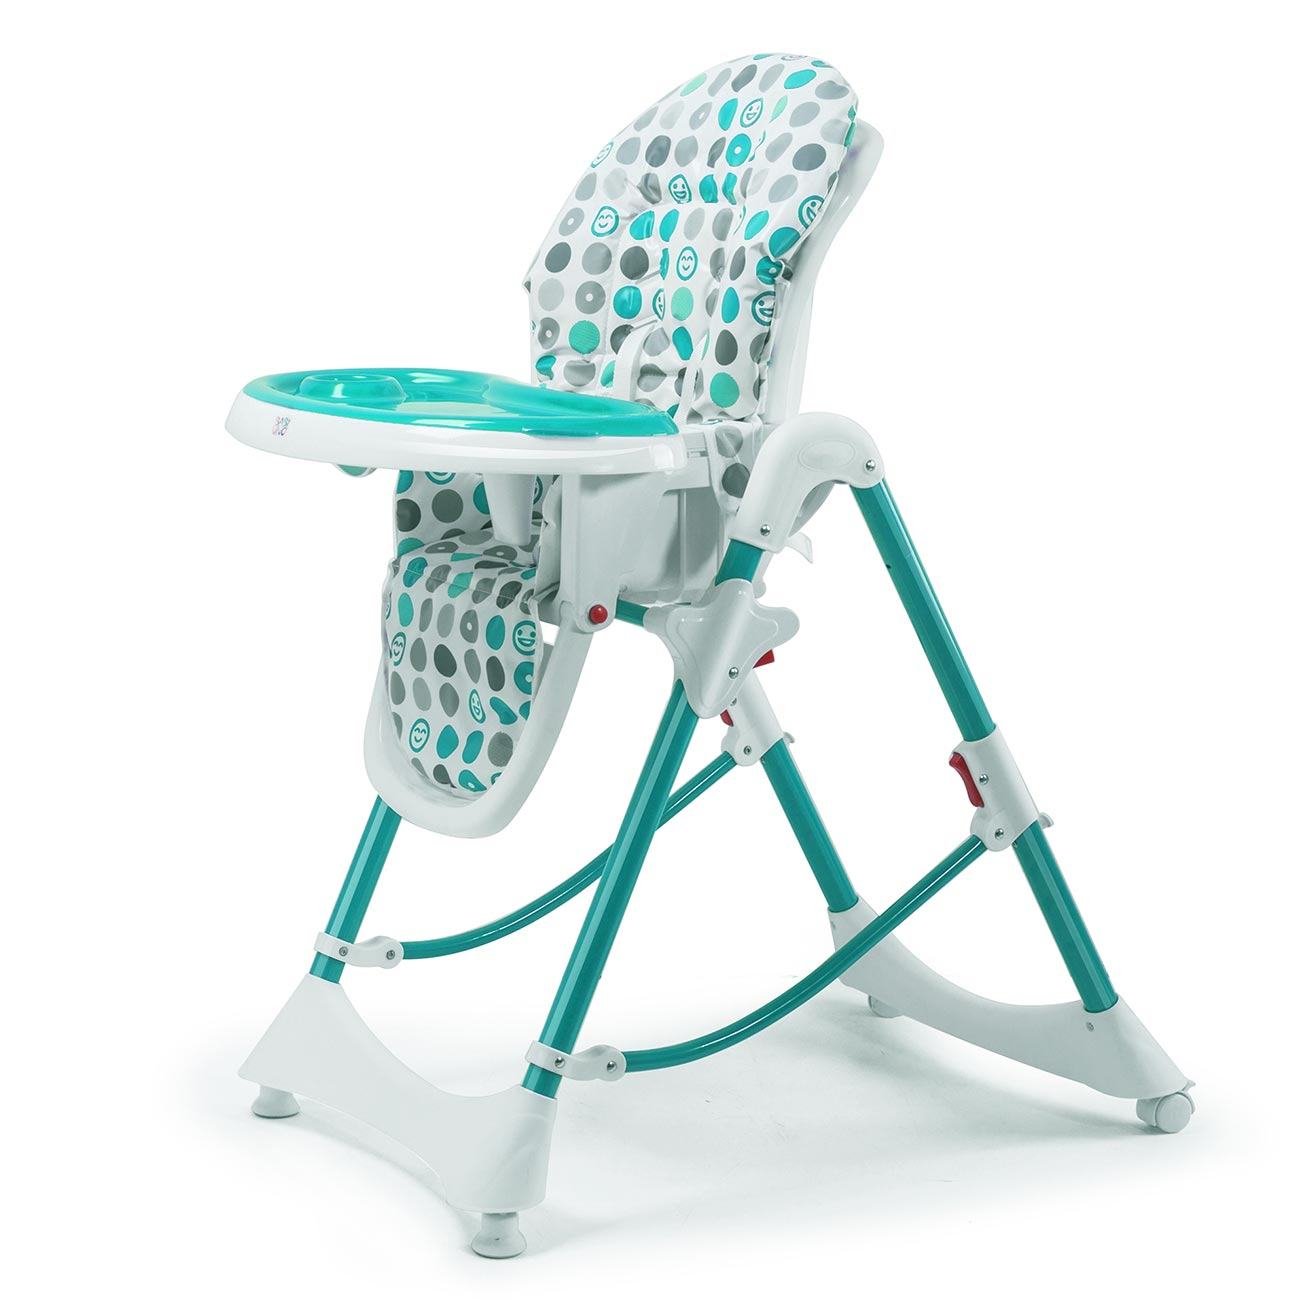 Baby Vivo Baby High Chair Infant Feeding Seat Tippy In Turquoise